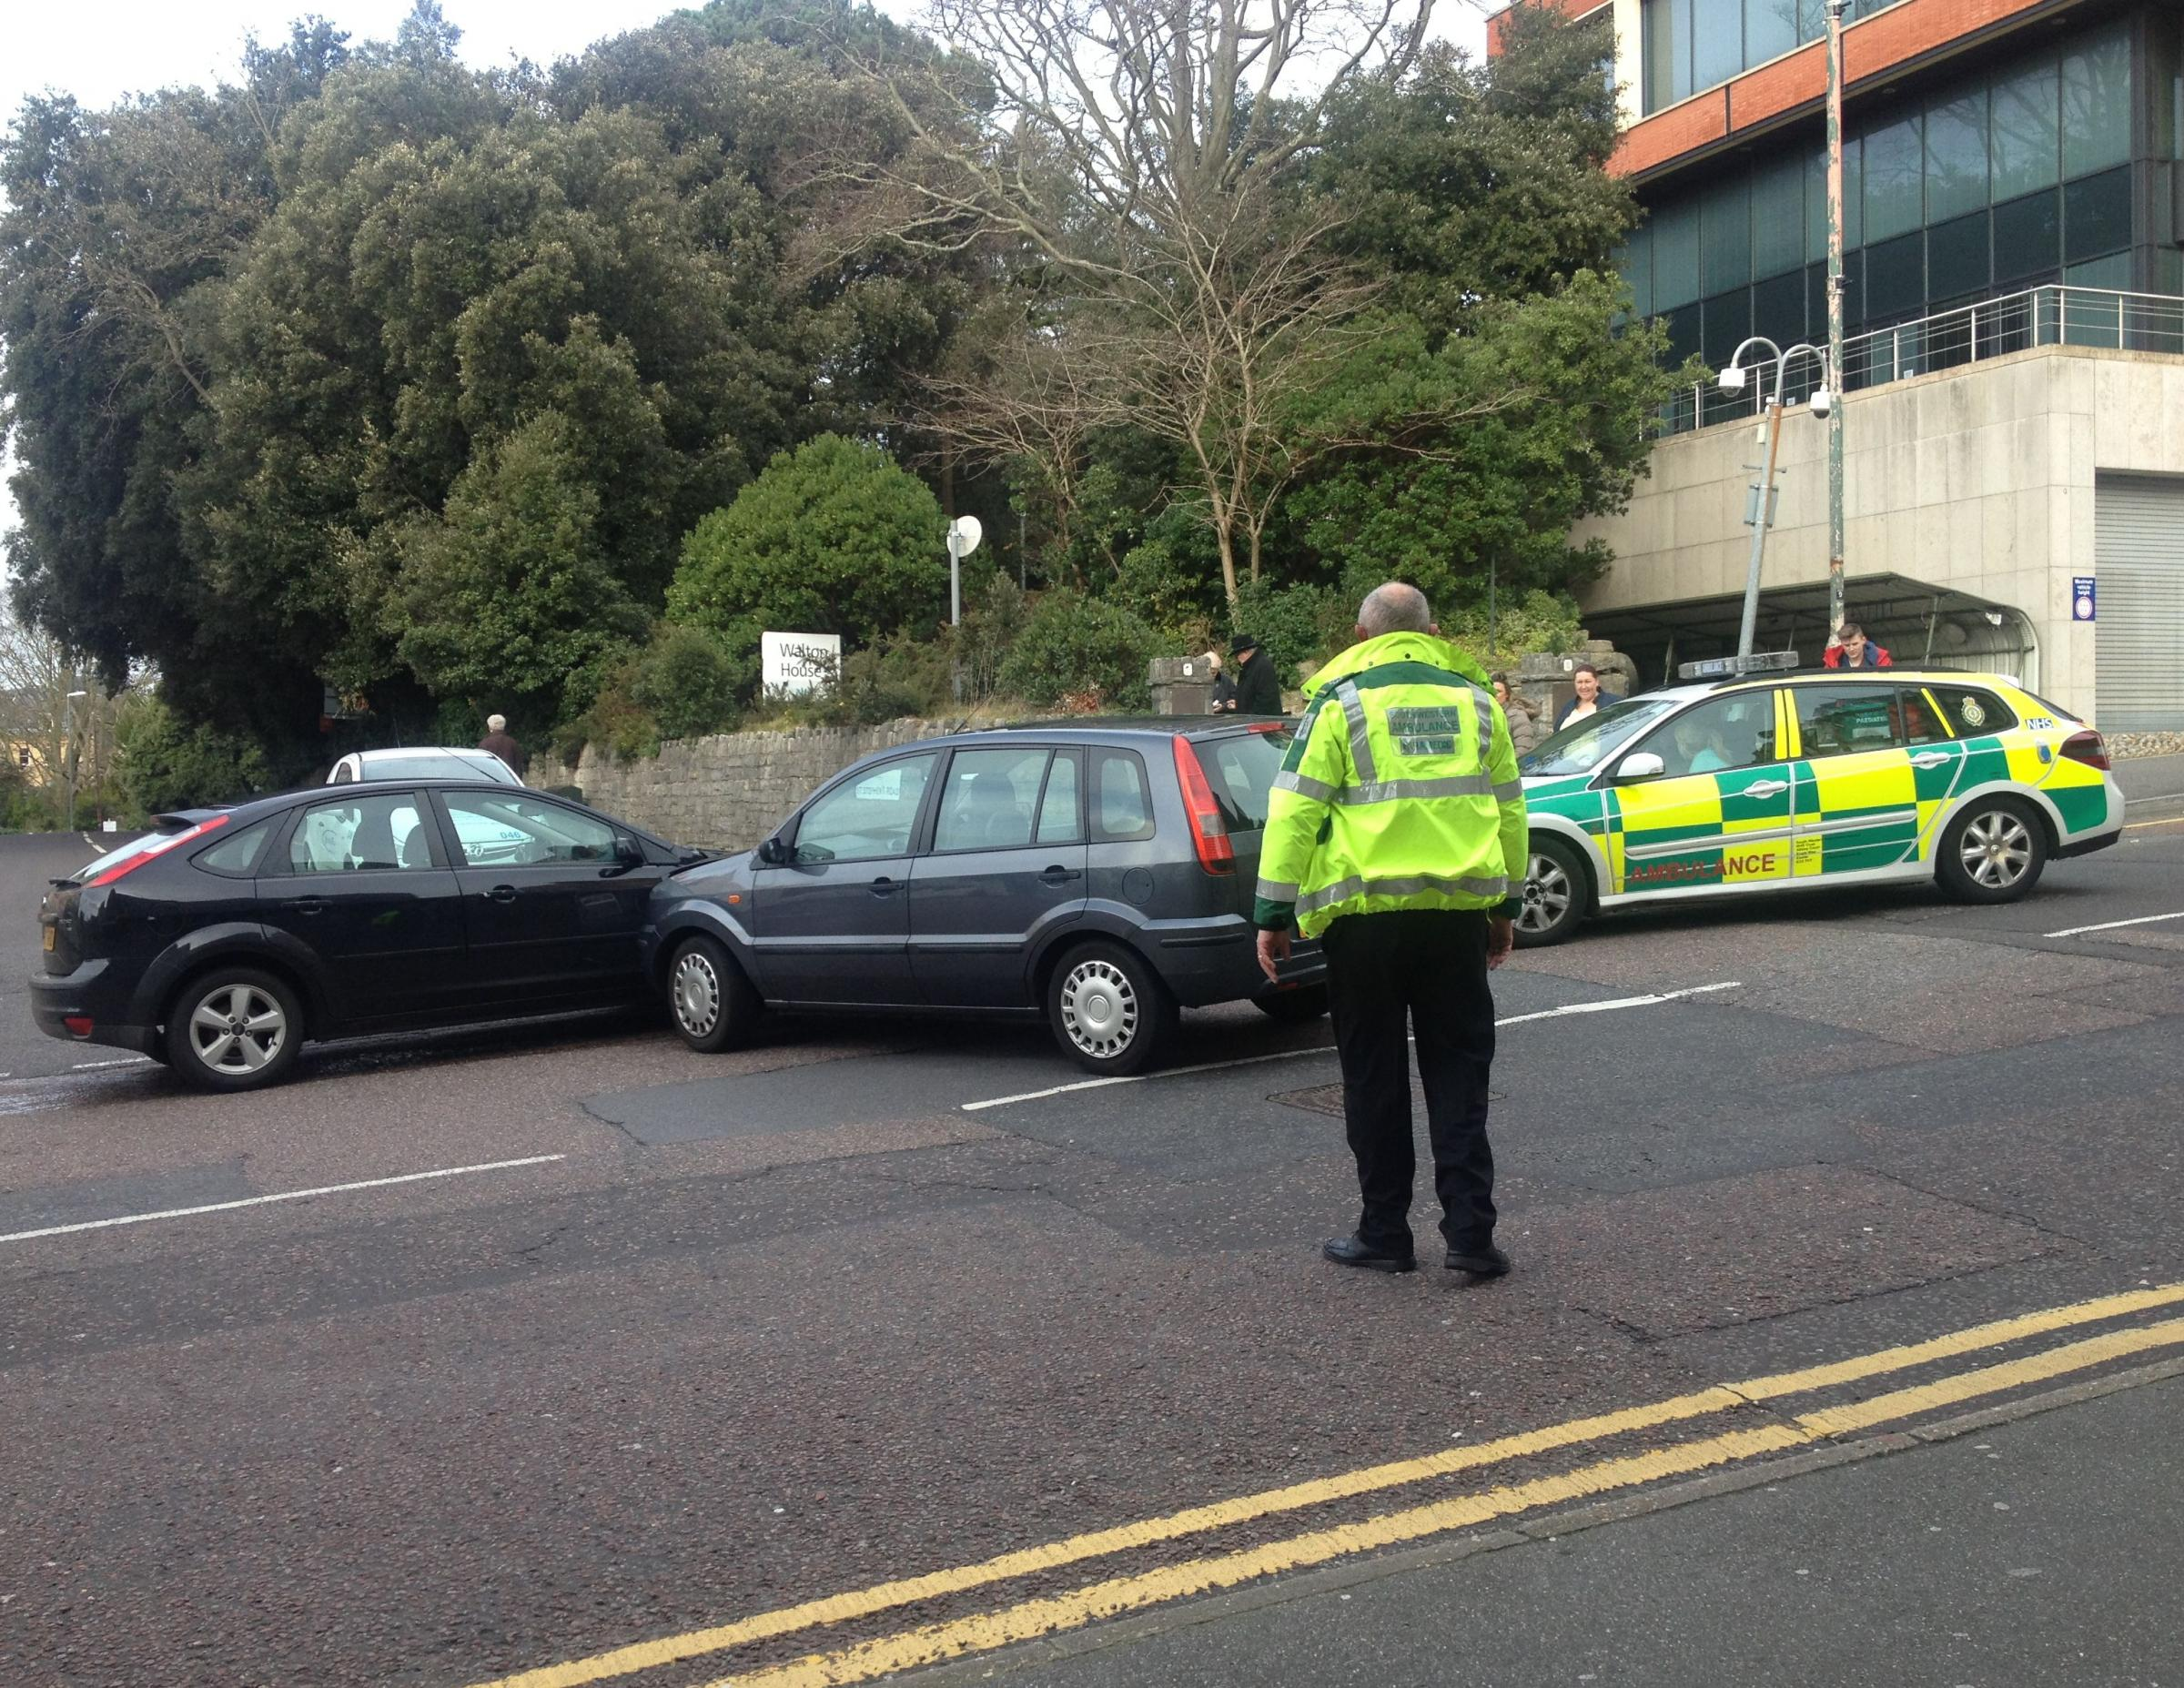 Two cars collide in Bournemouth town centre